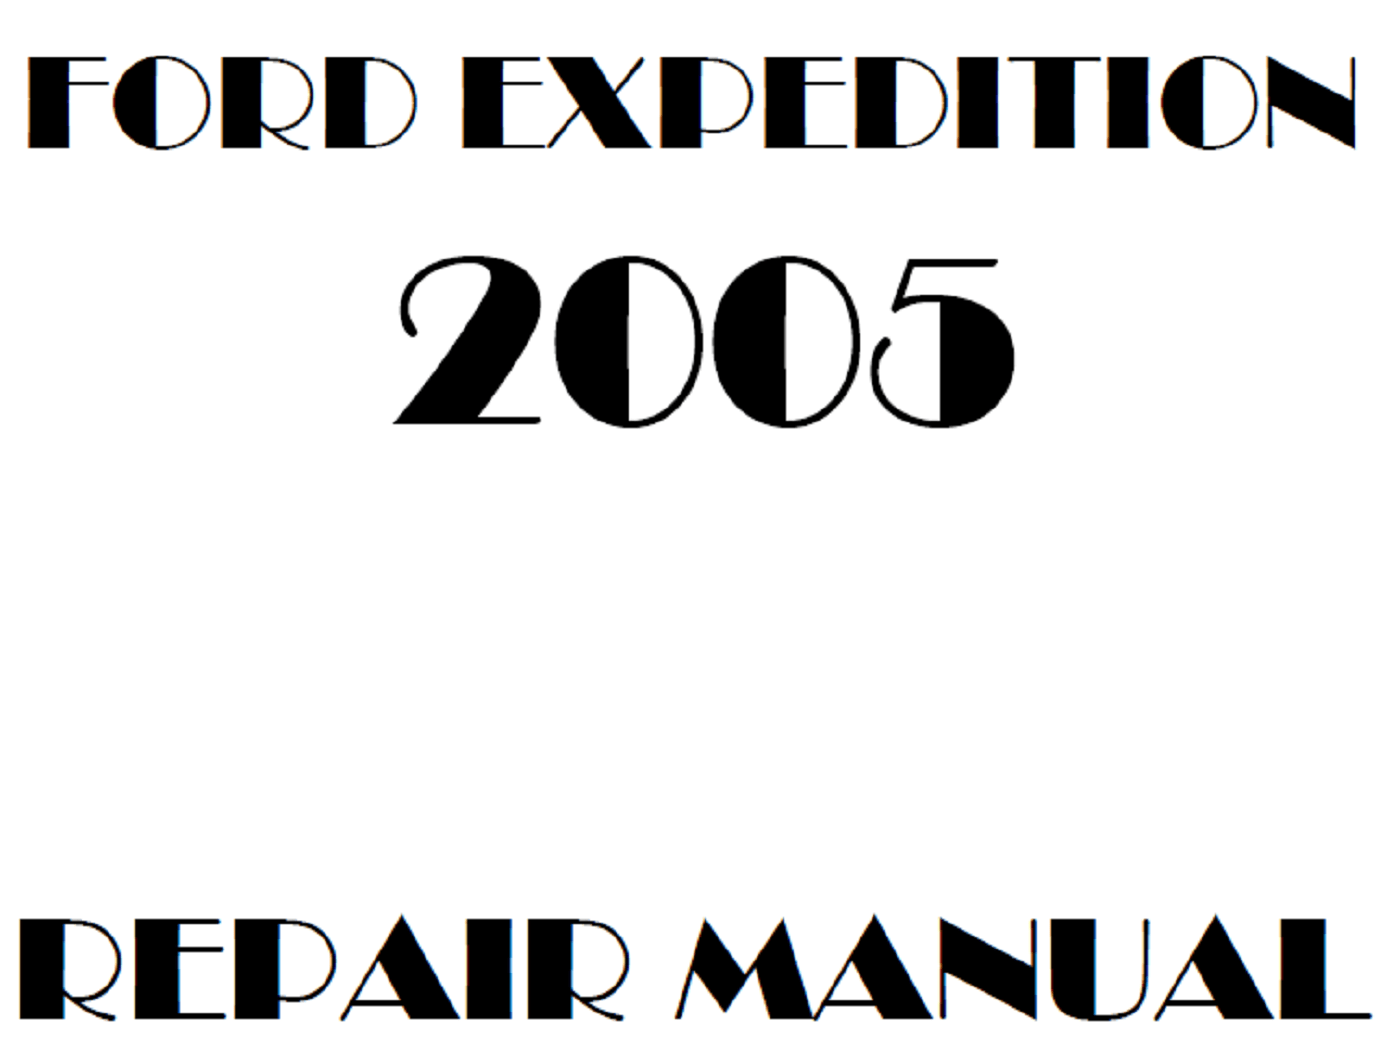 2005 Ford Expedition repair manual